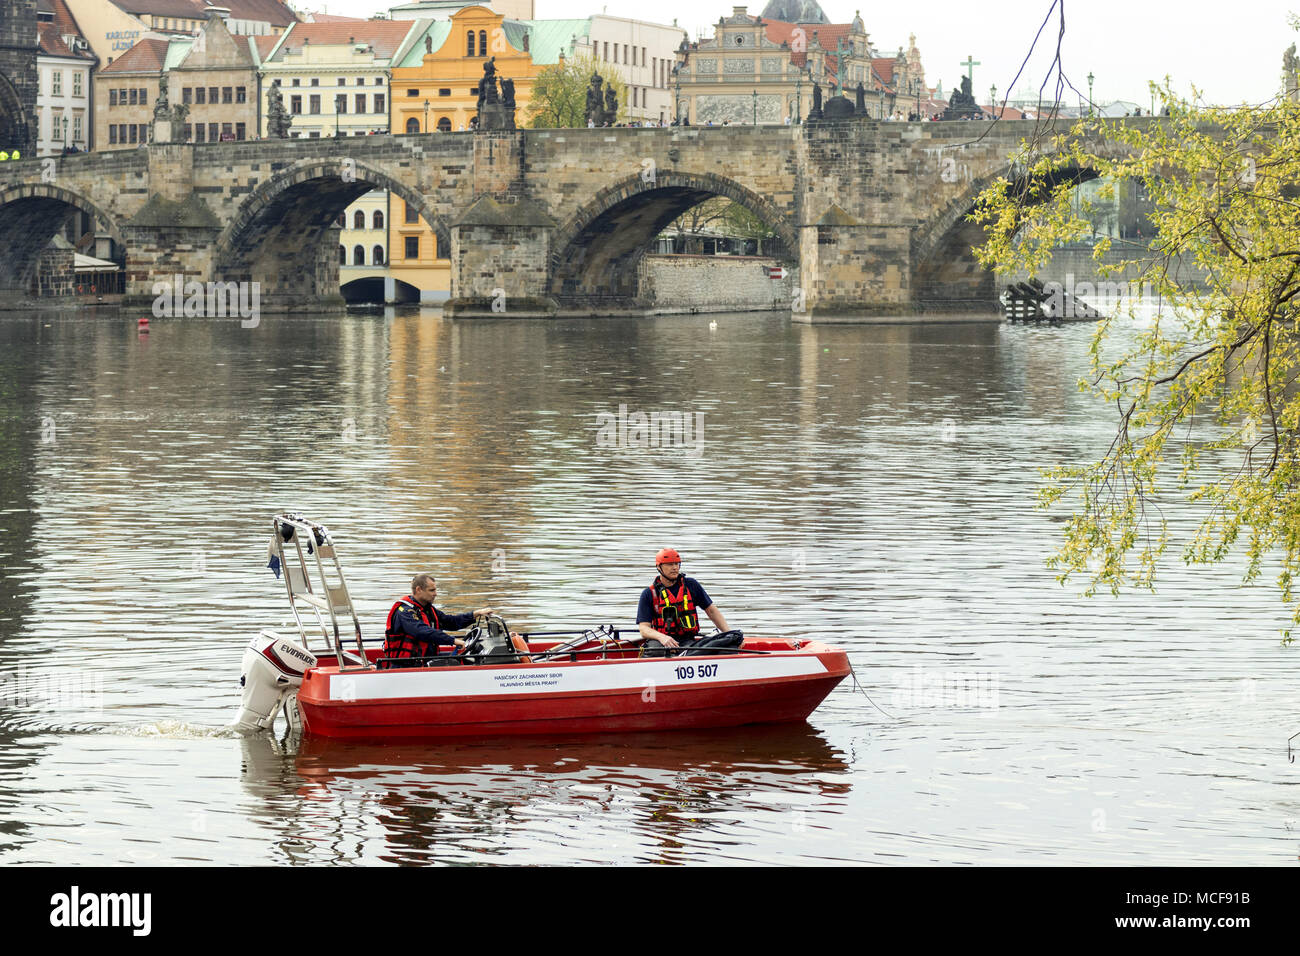 Prague - April 15: 2 firefighters sits in their boat and makes their training sail in the close neighborhood of Charles Bridge, on April 15, 2018 in P - Stock Image